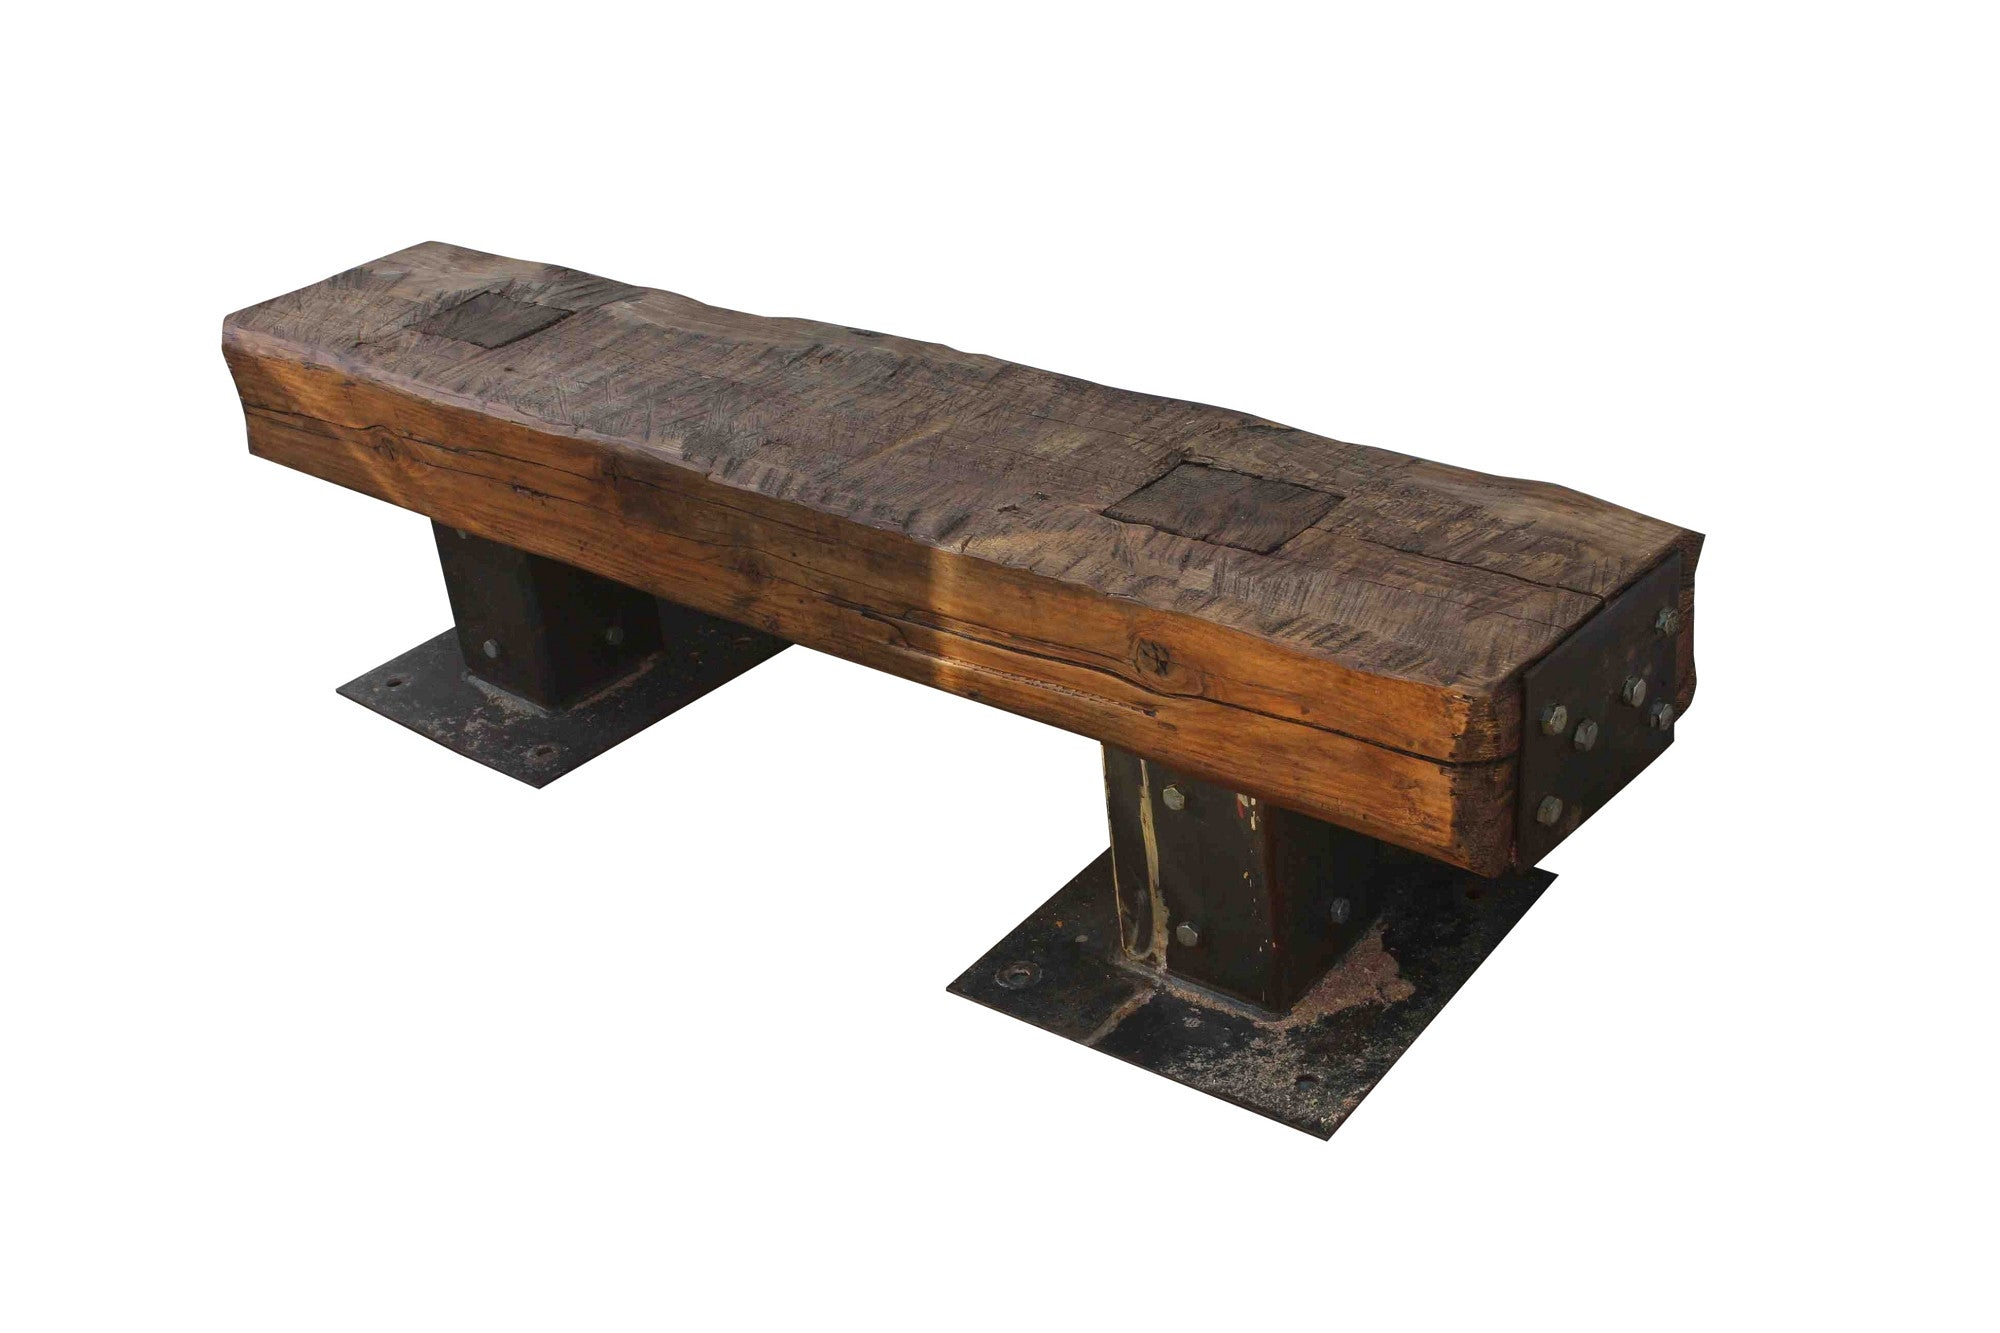 Outdoor wooden benches woodworking plans - Rustic Wood Outdoor Bench Mortise Tenon